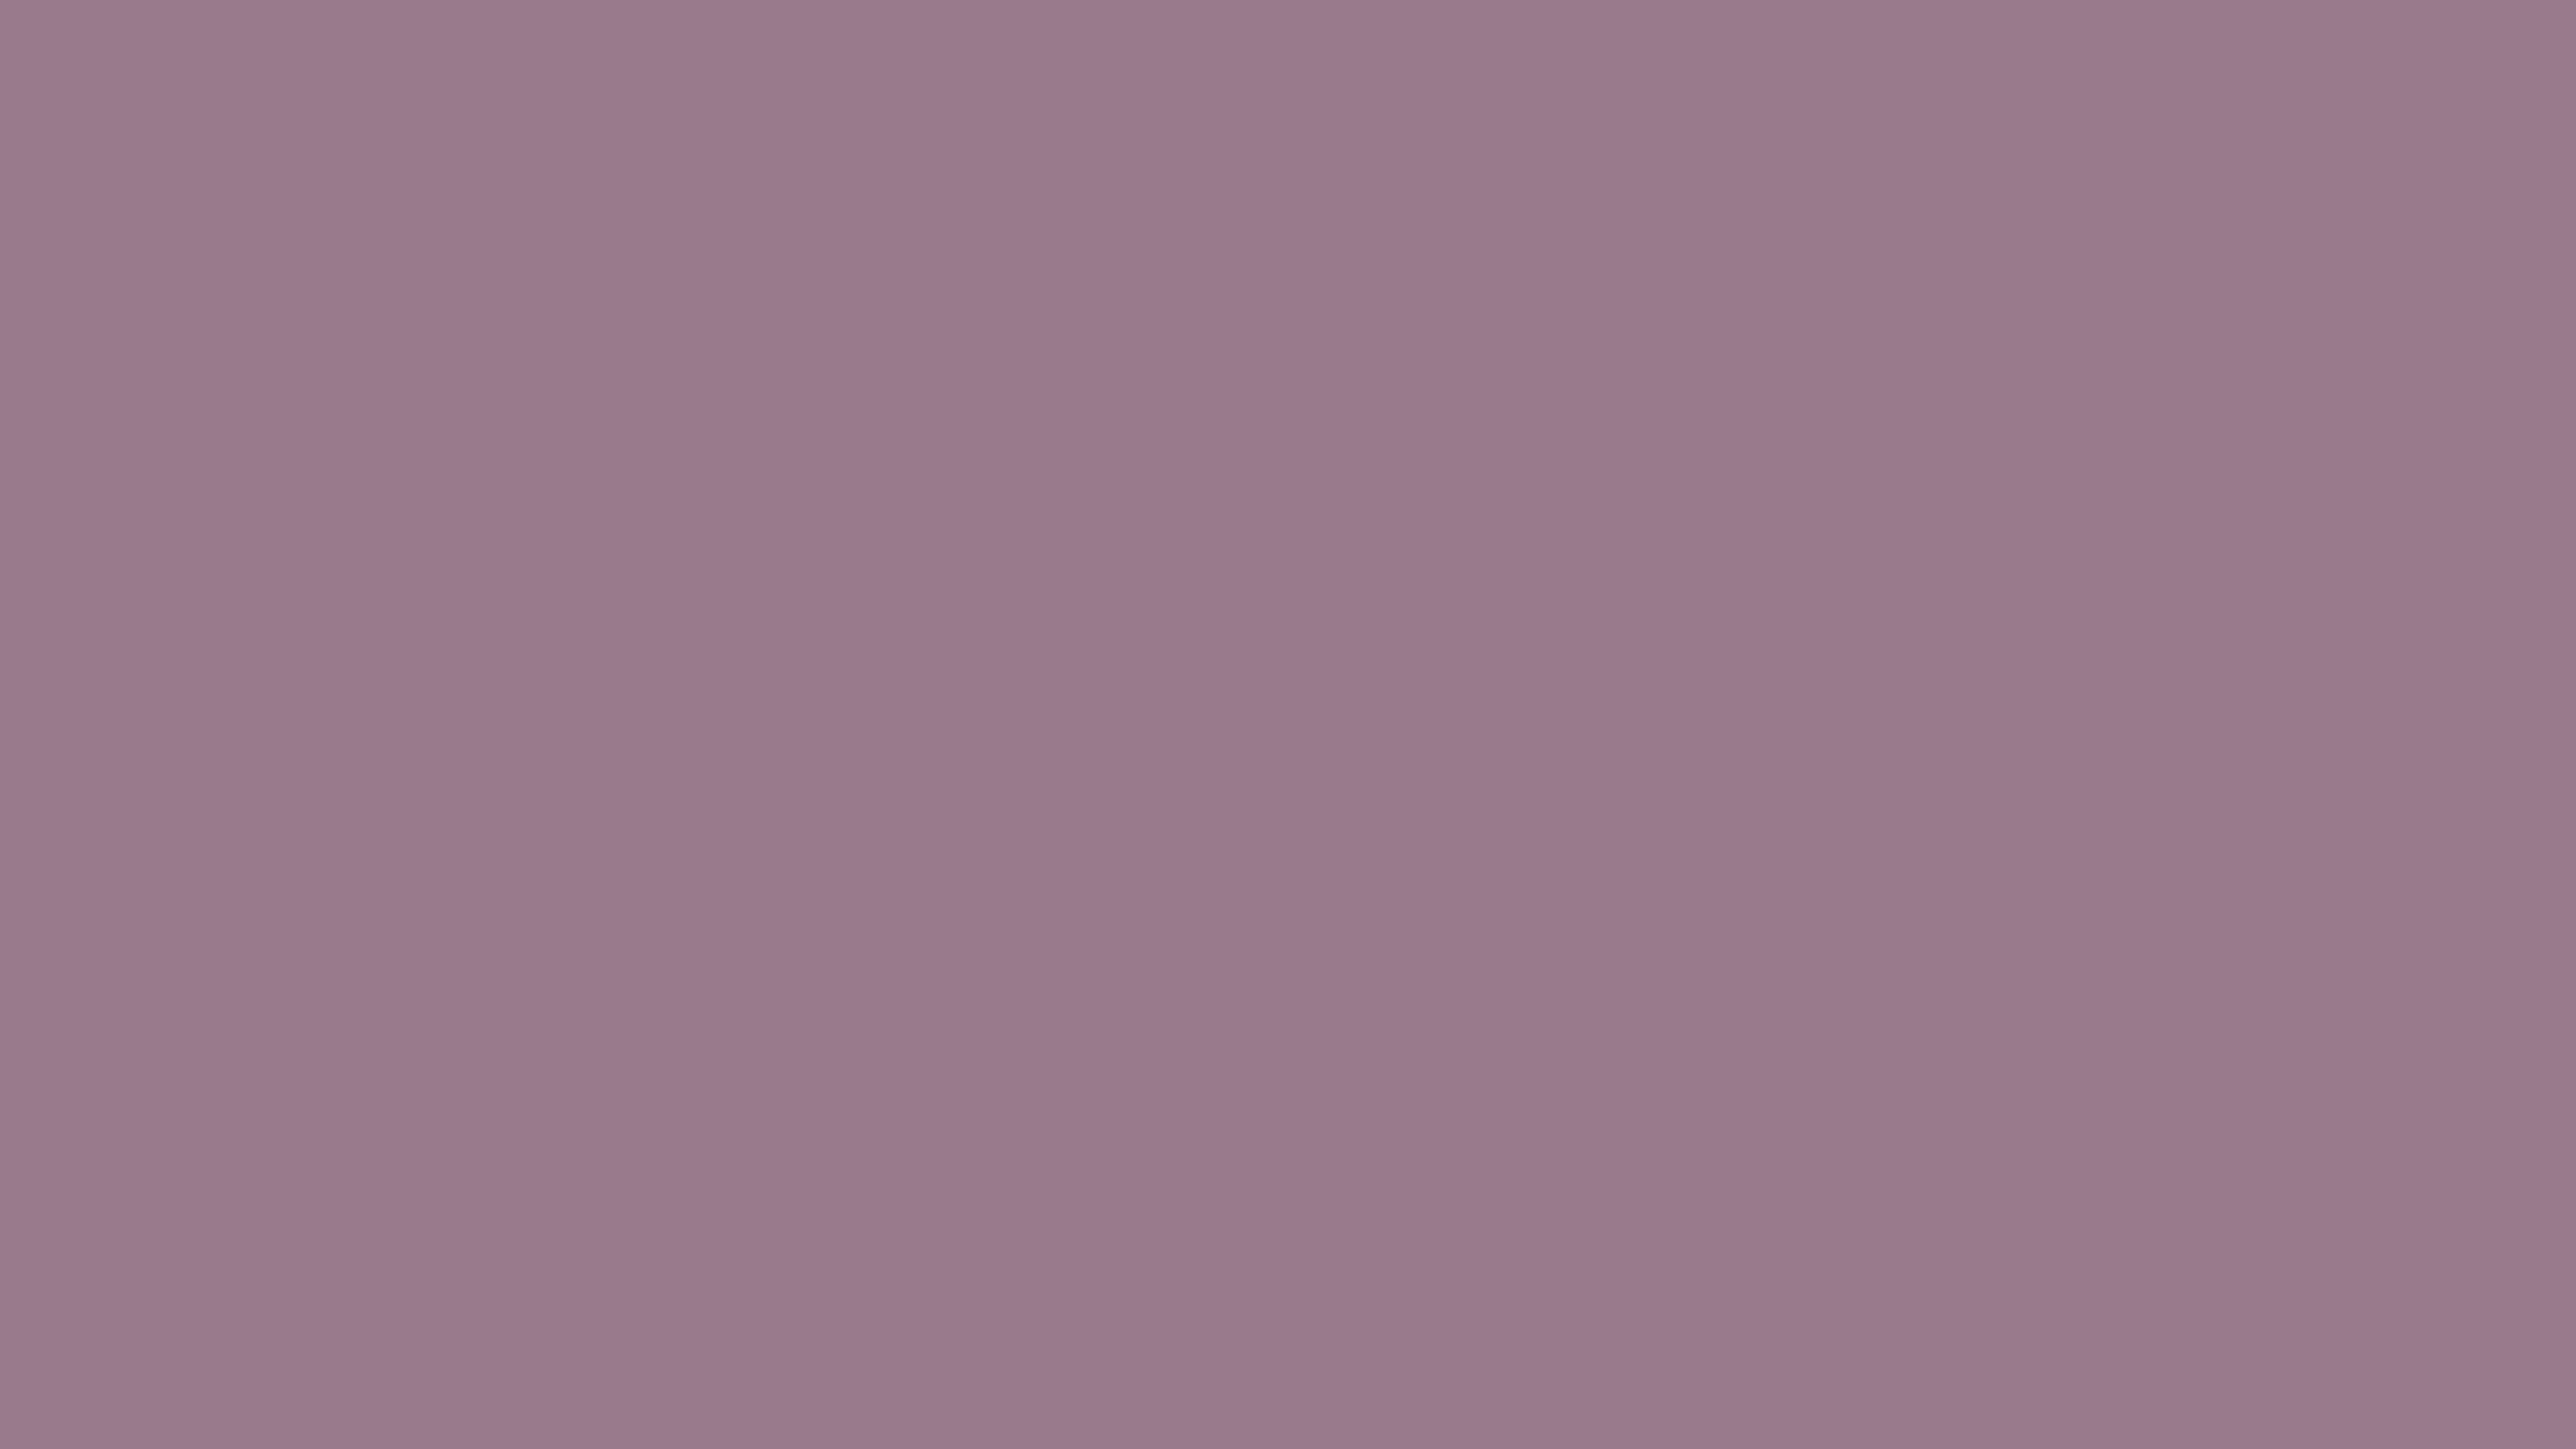 5120x2880 Mountbatten Pink Solid Color Background